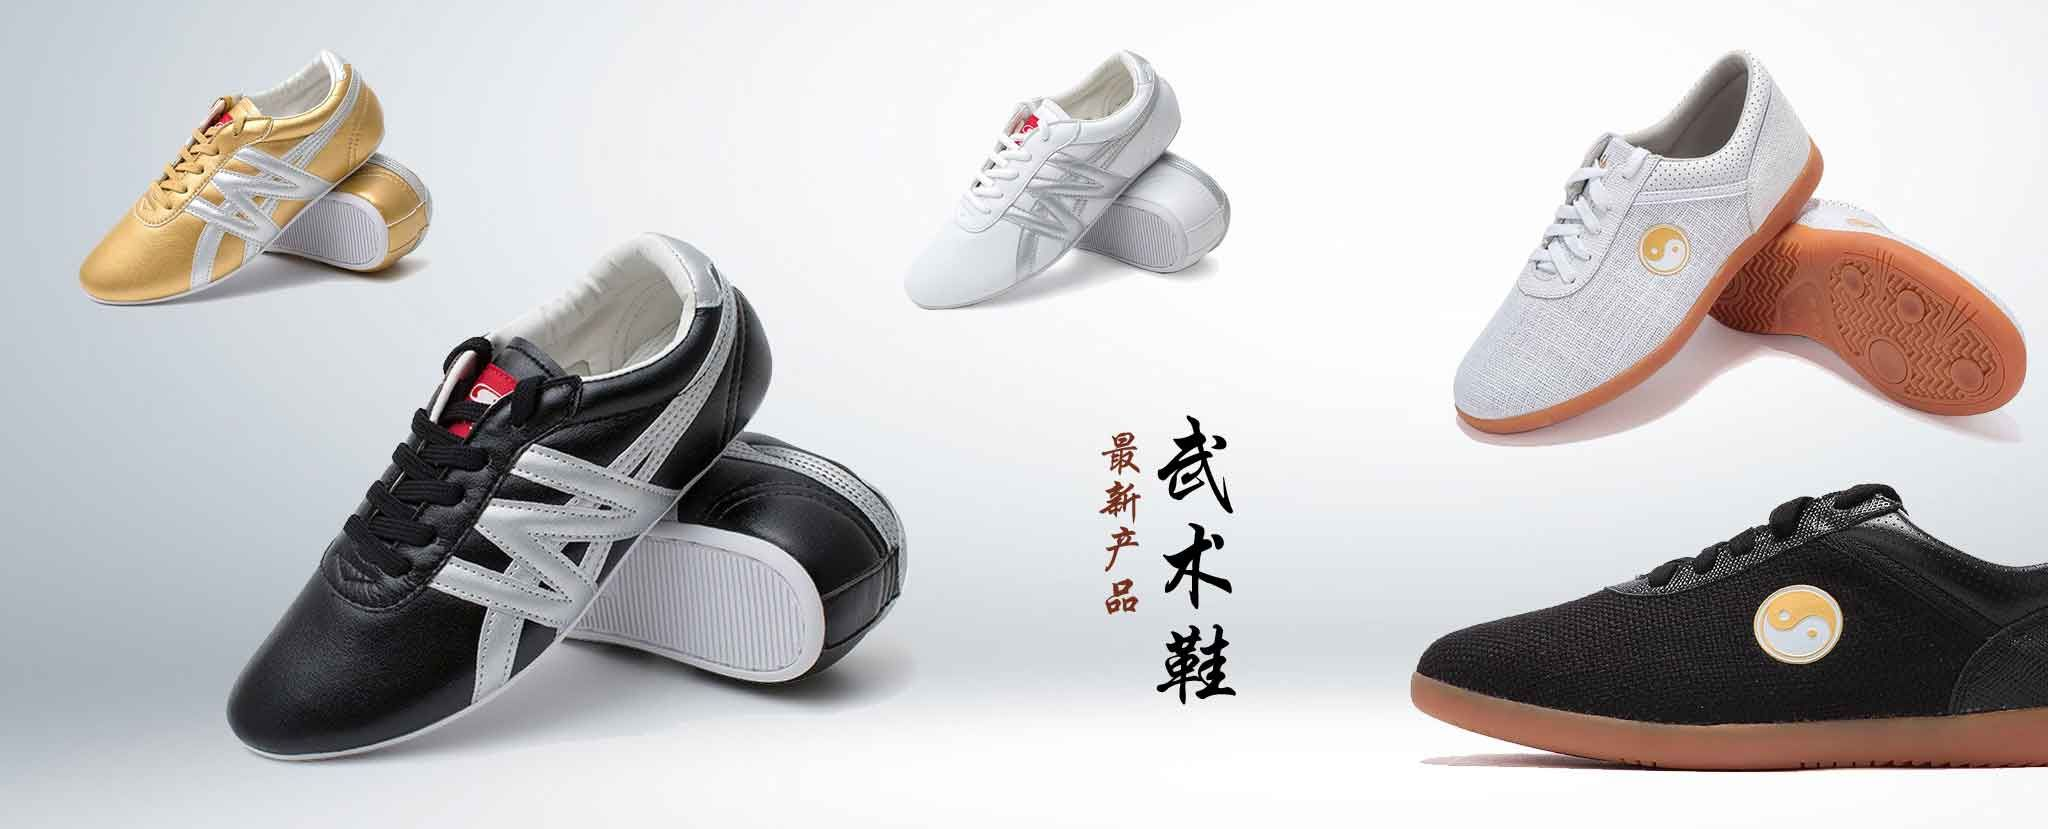 2019-2020 Wushu and Taiji Shoes